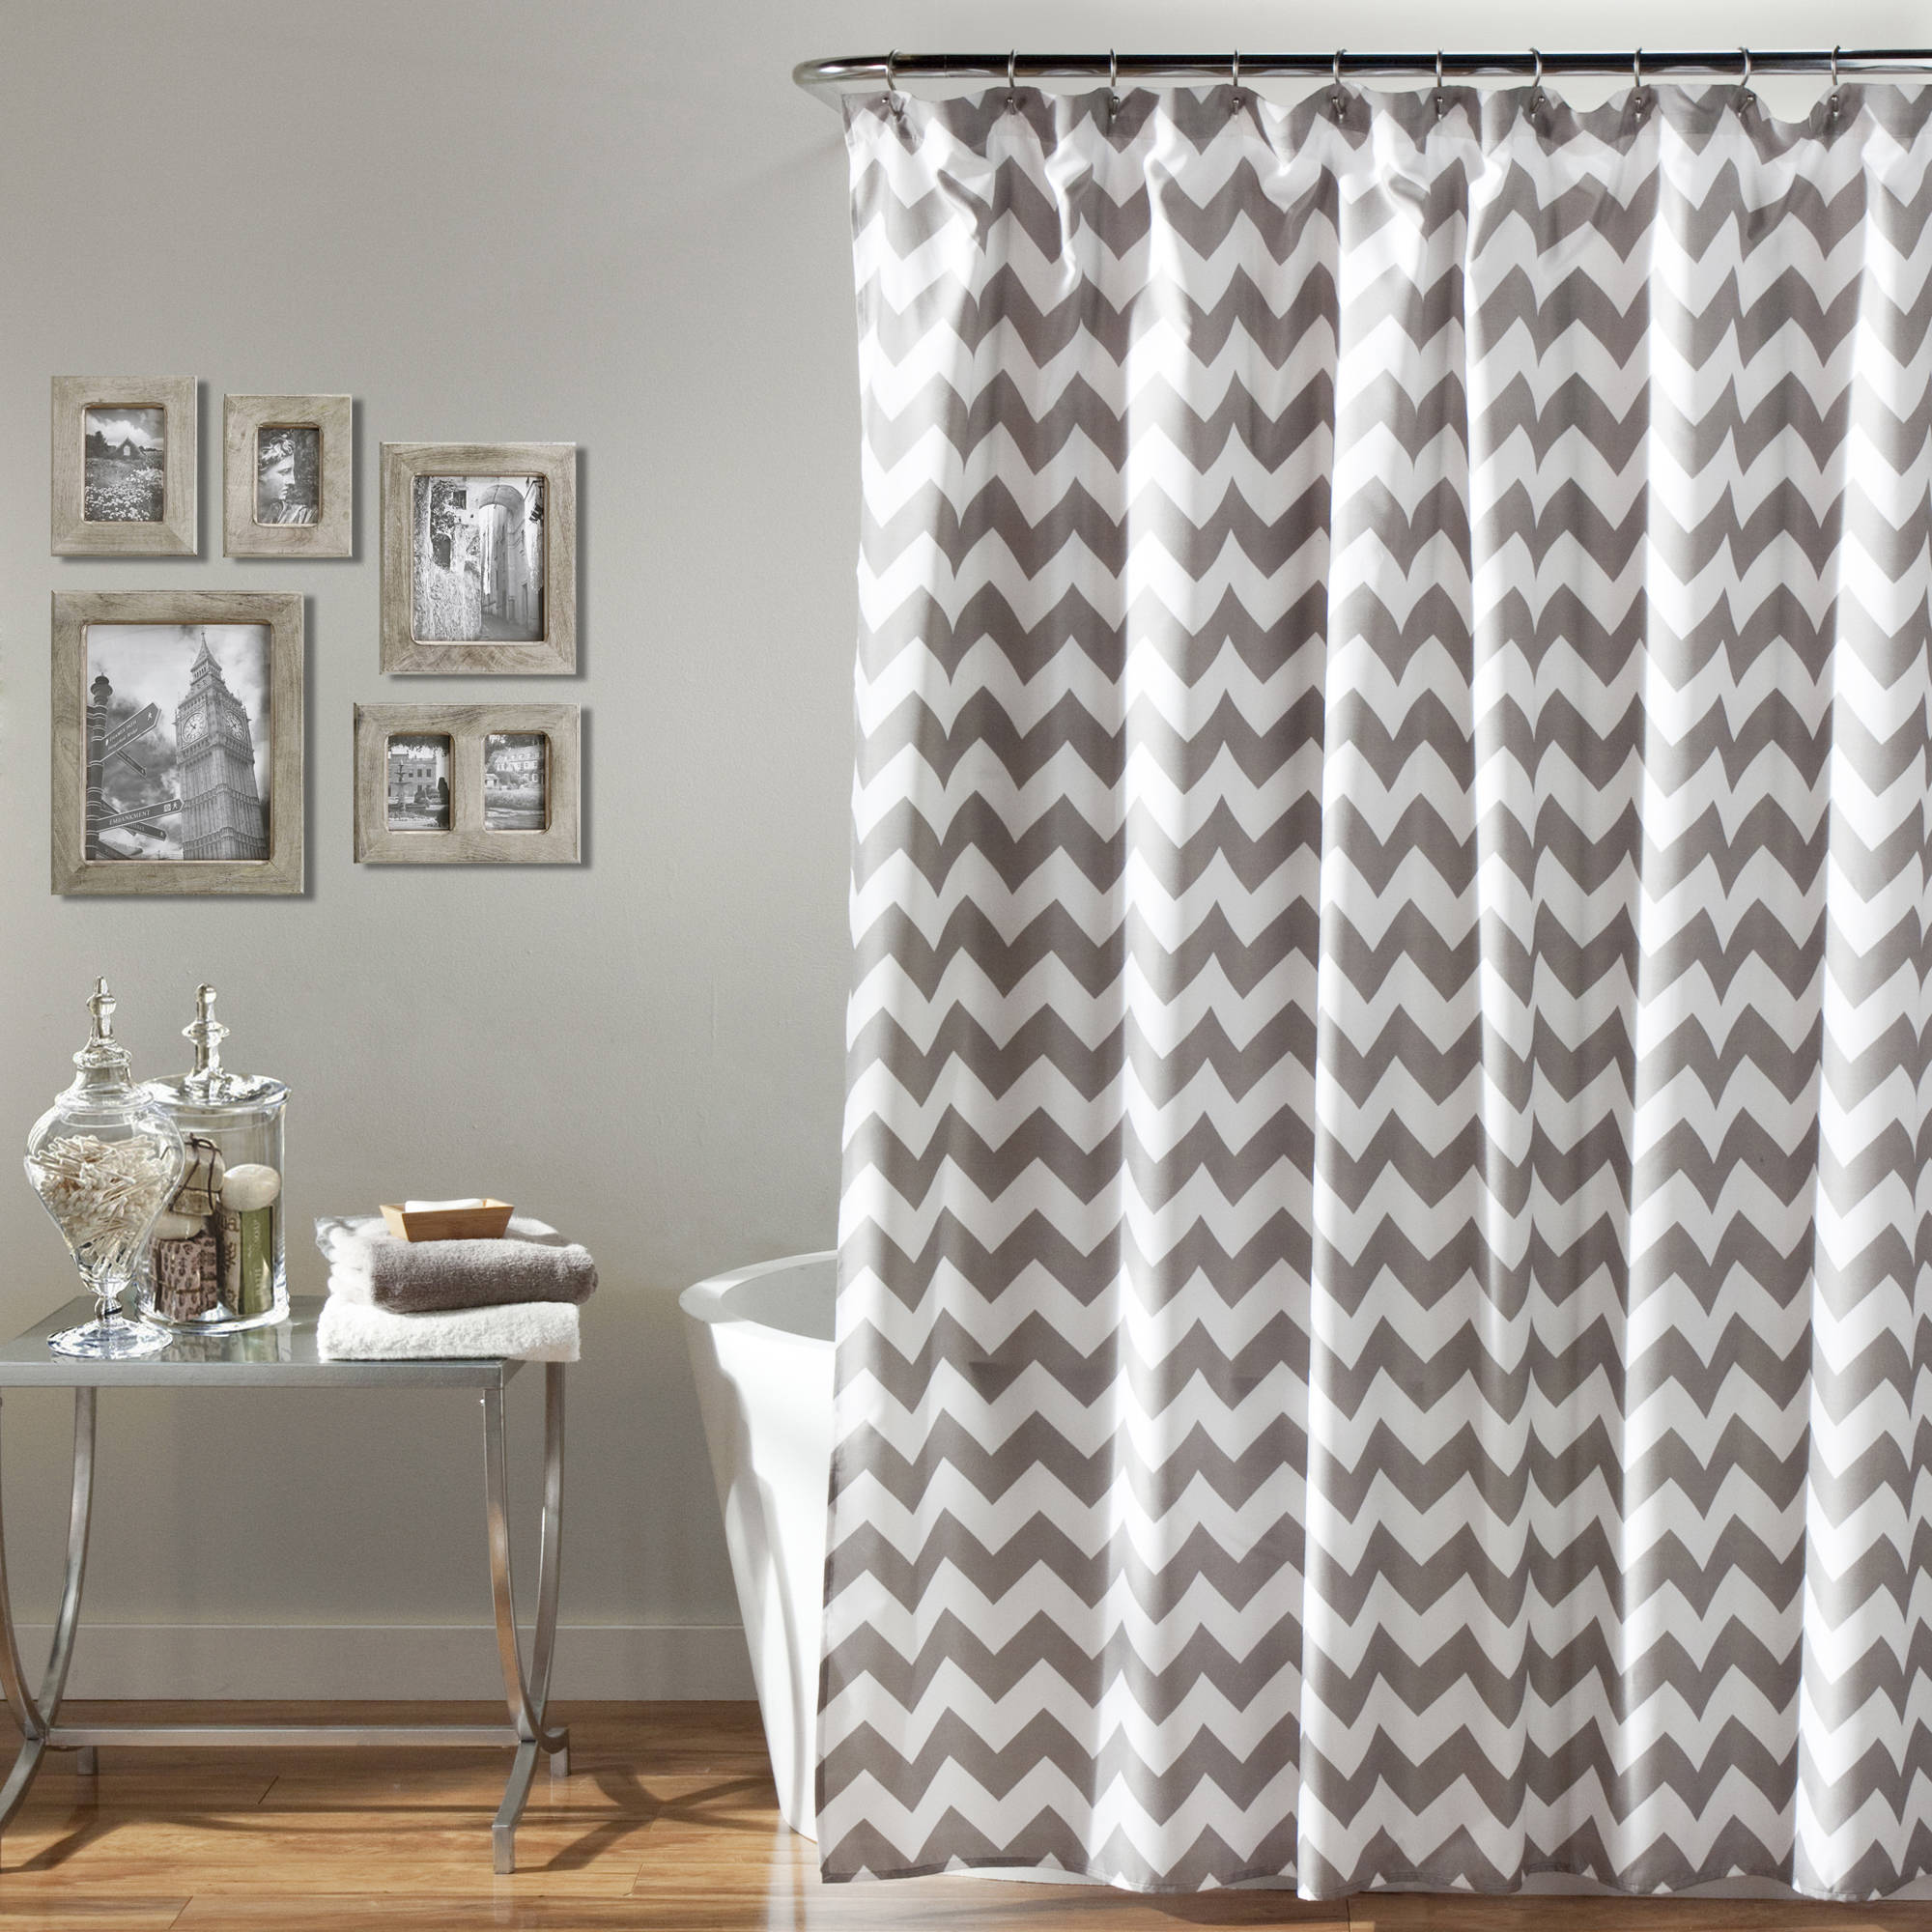 Bath - Black and white chevron bathroom mat for bathroom decorating ideas